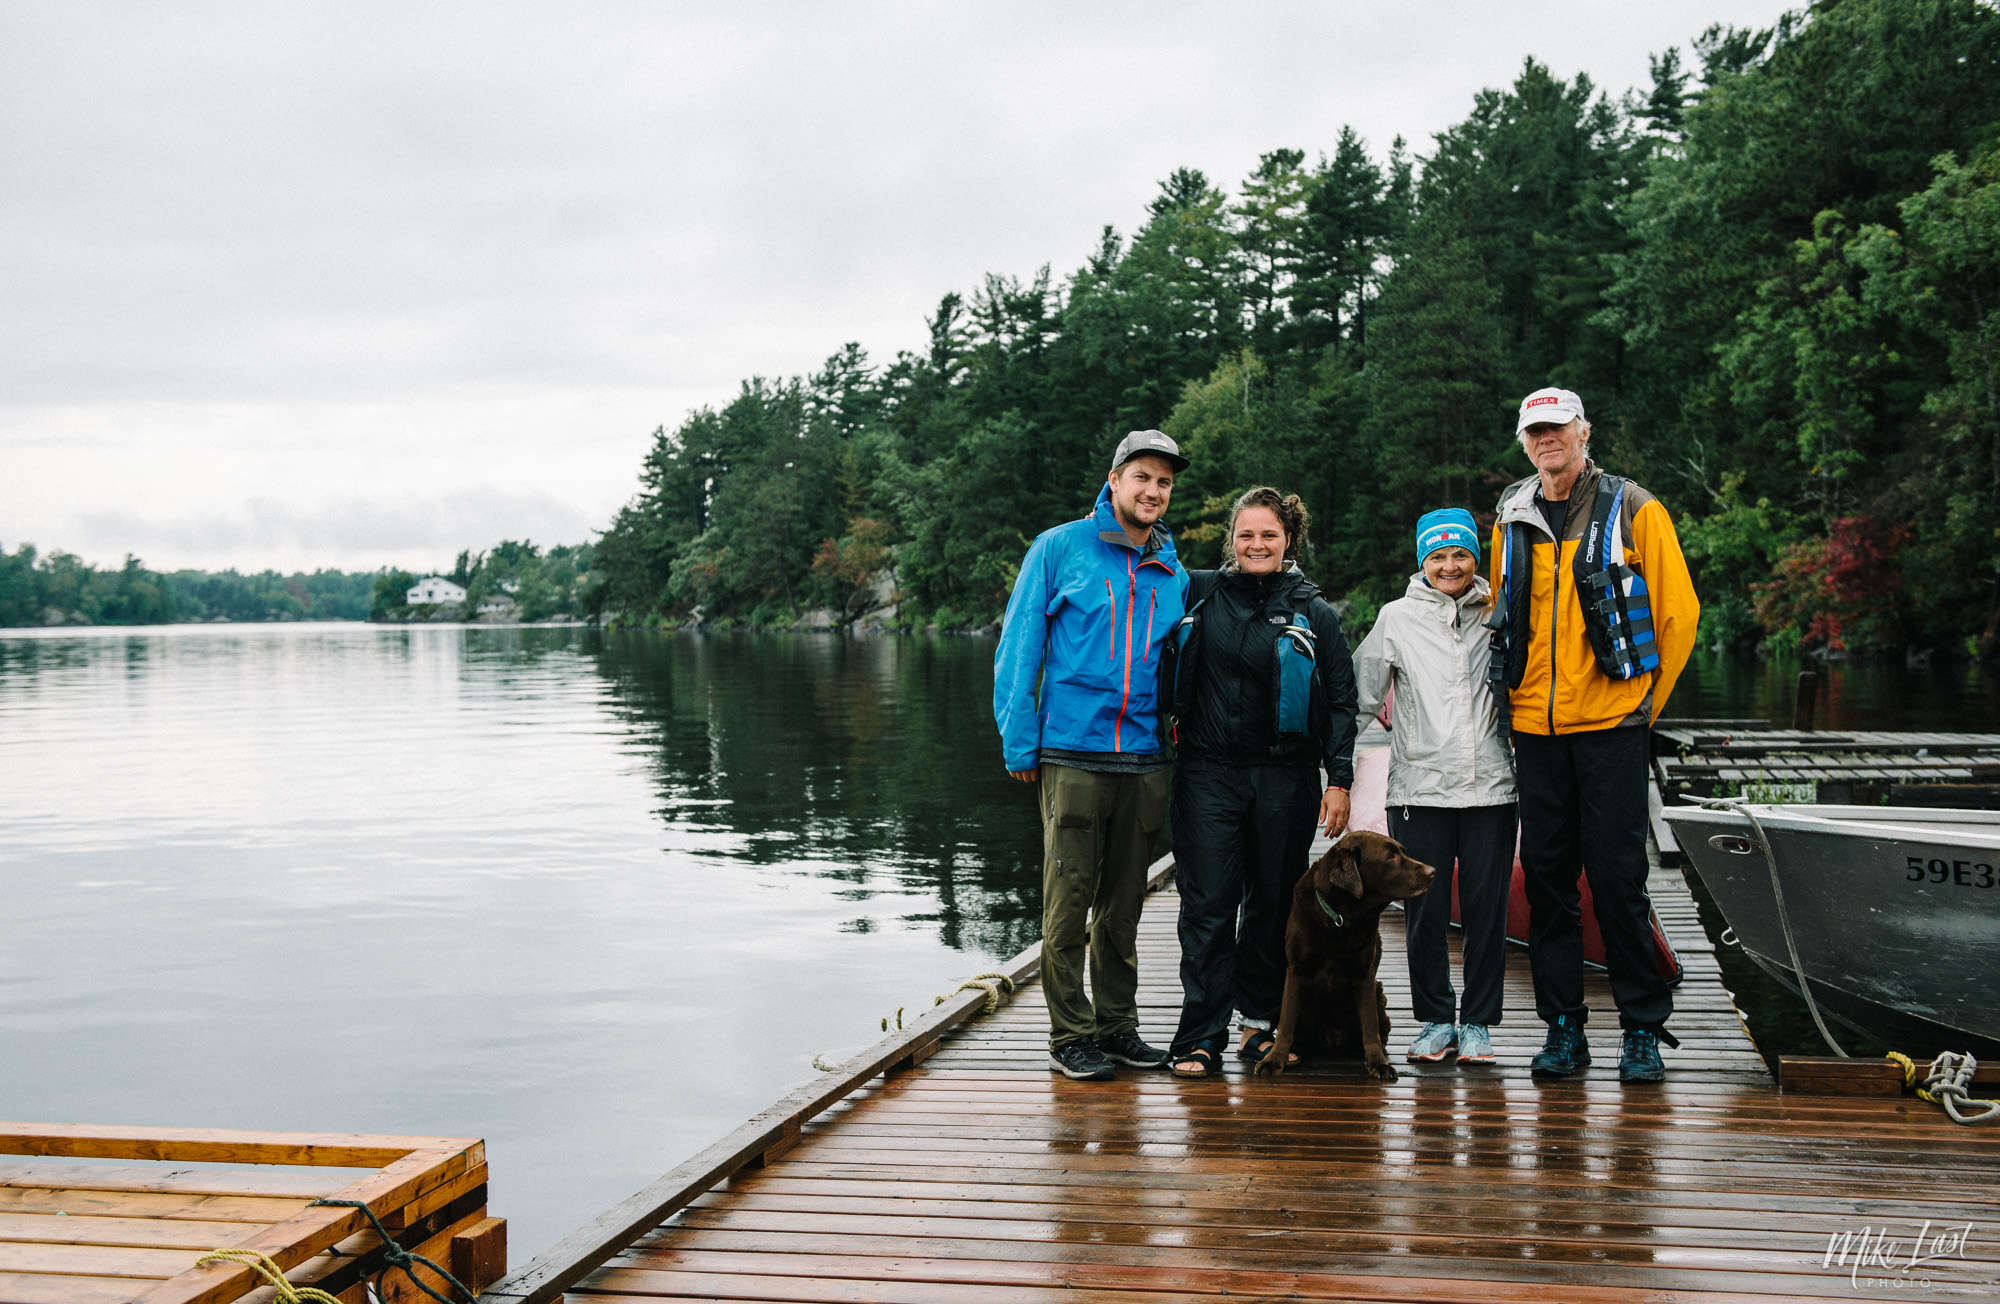 Canoe trip ends at Hartley Bay Marina - French River Provincial Park